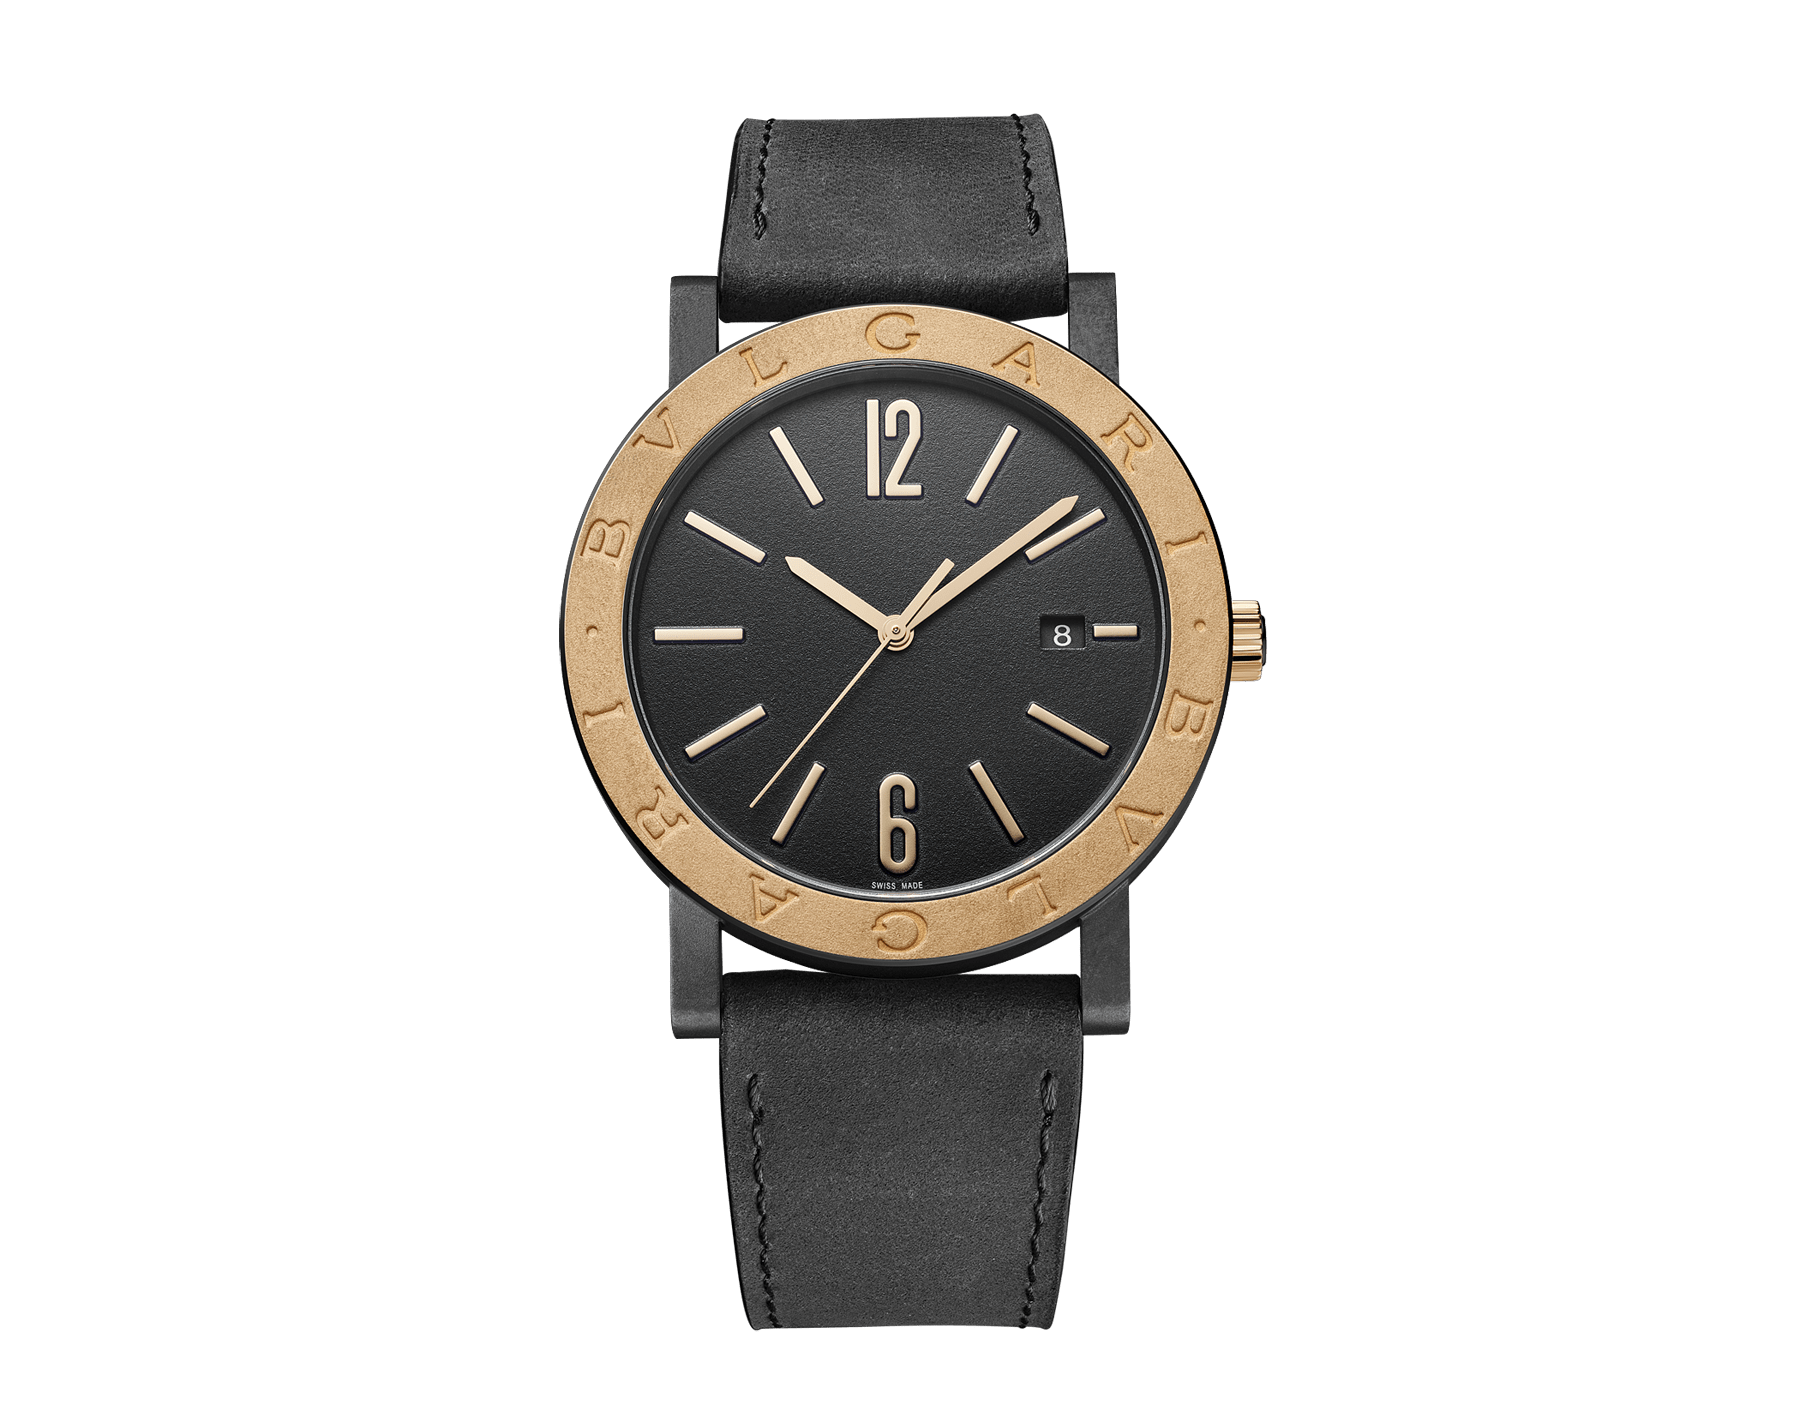 BVLGARI BVLGARI Solotempo watch with mechanical manufacture movement, automatic winding and date, stainless steel case treated with black Diamond Like Carbon, bronze bezel engraved with double logo, black dial, black leather bracelet and interchangeable black rubber bracelet 102931 image 1